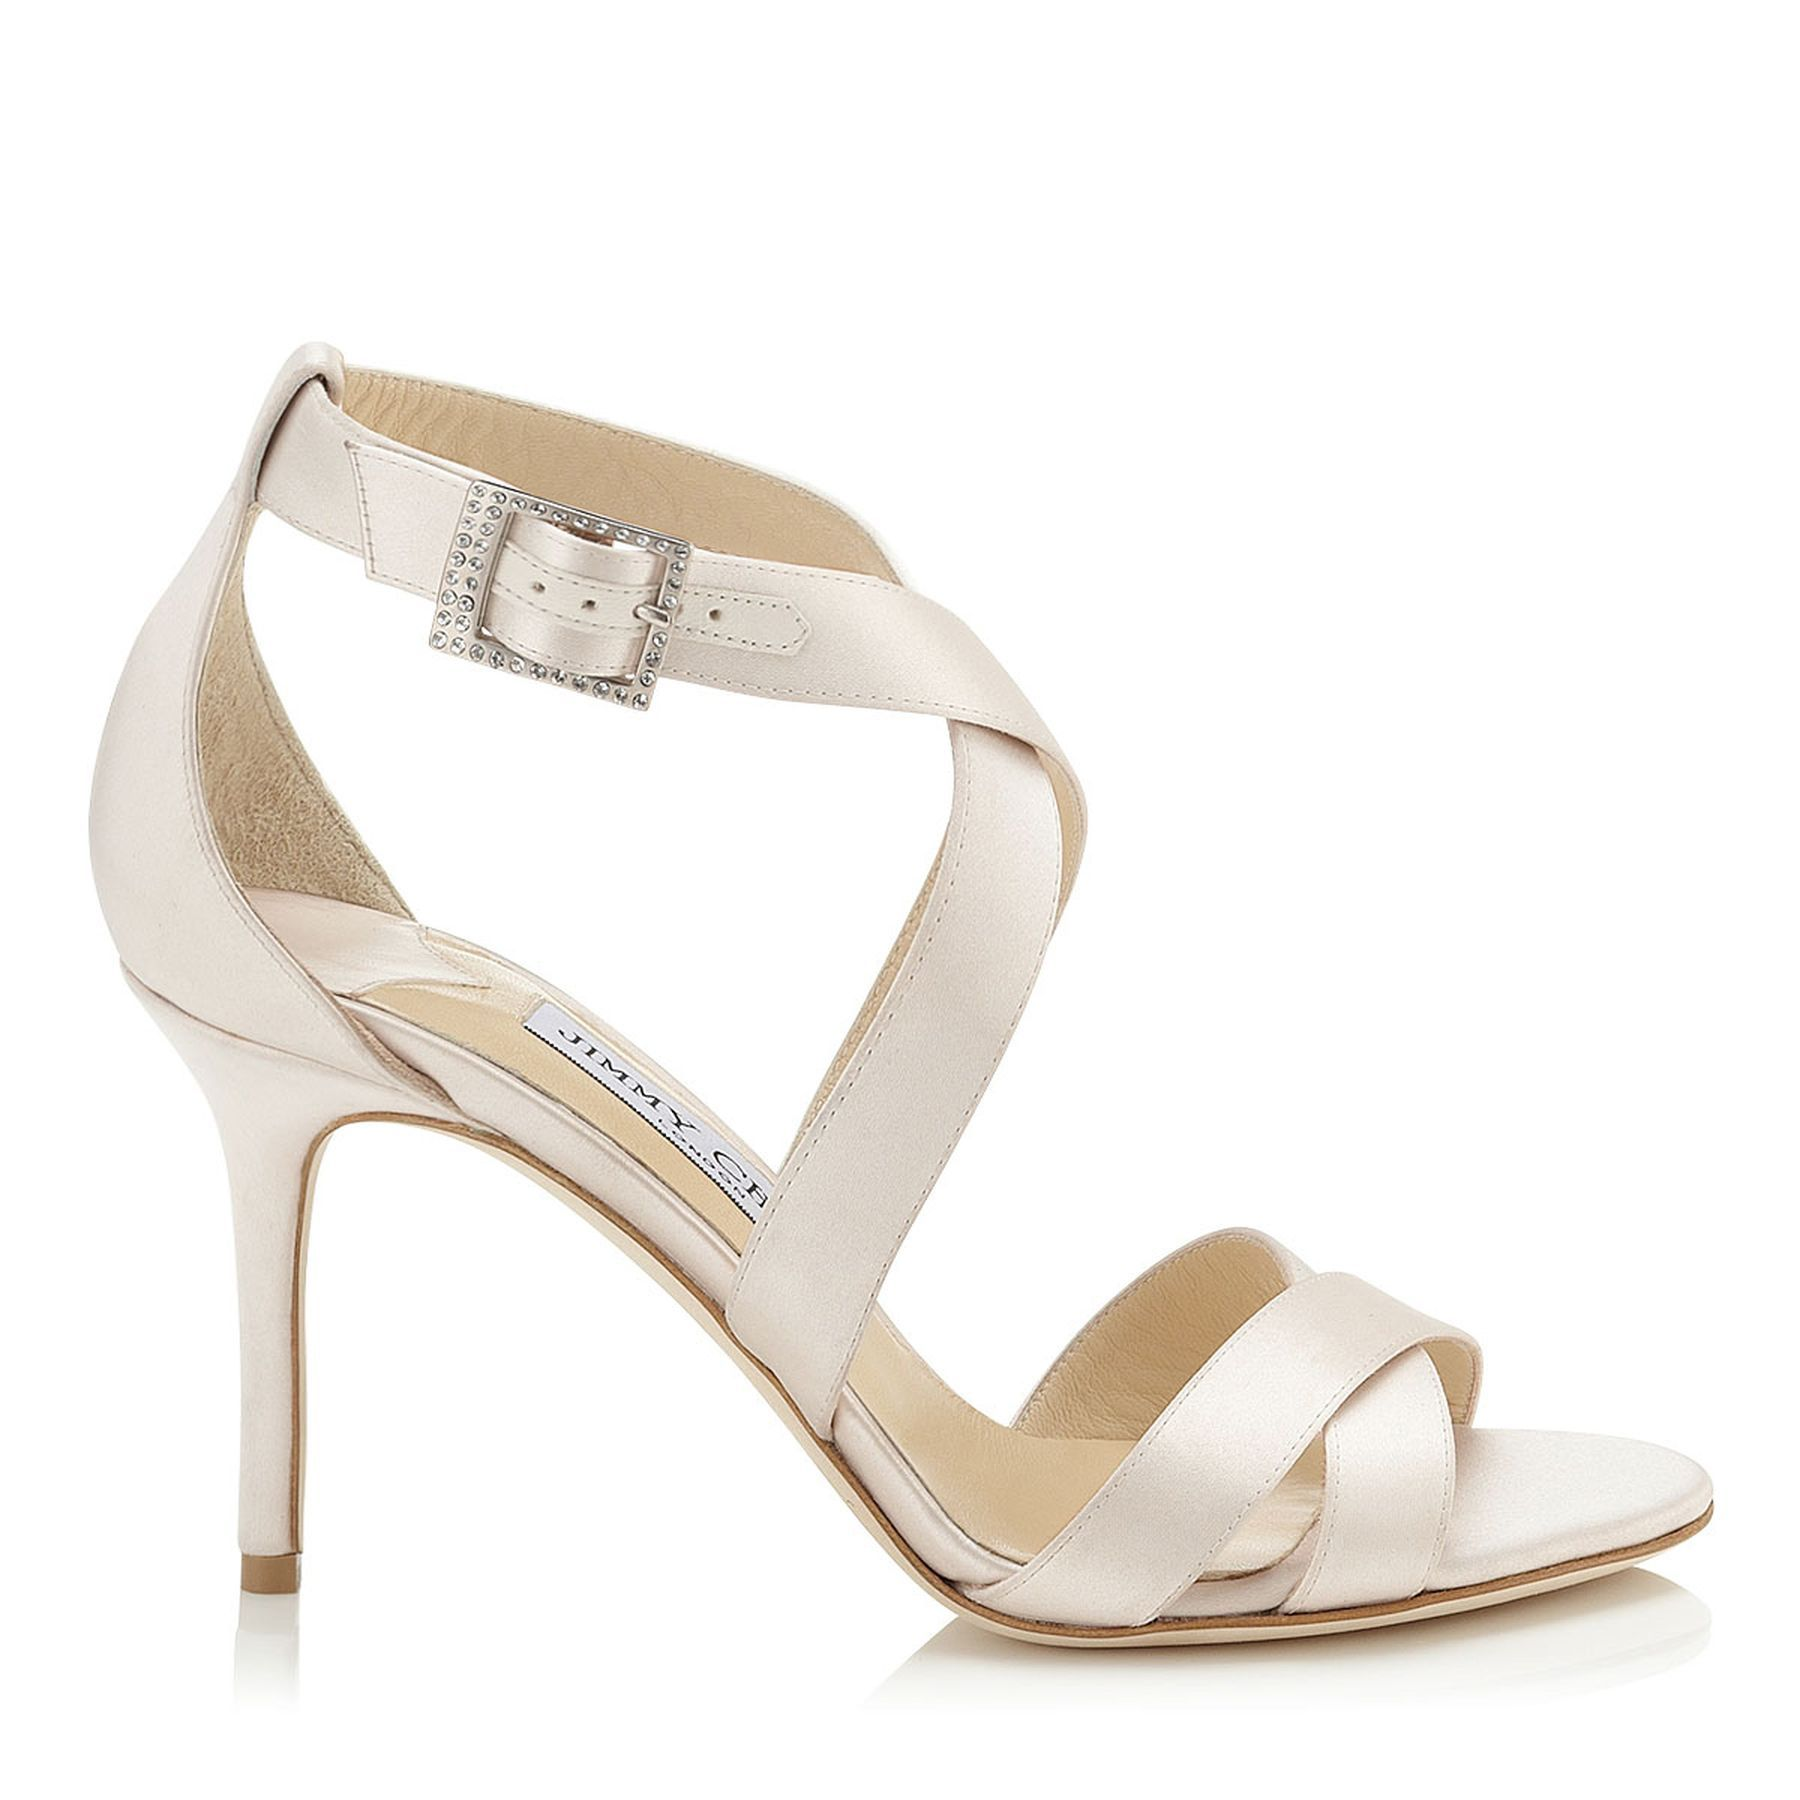 Ivory Satin Strappy Sandals | Louise | Bridal Collection | JIMMY CHOO Shoes